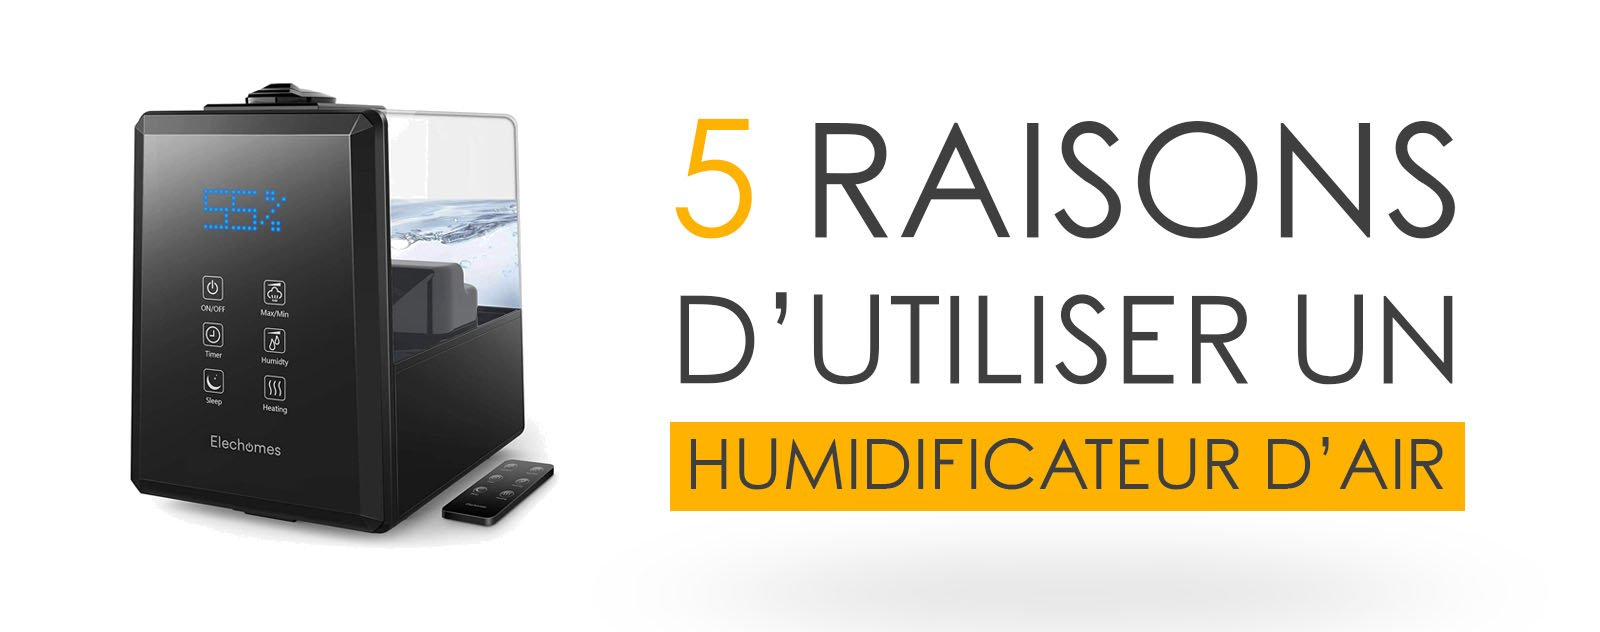 5 raisons d'utiliser un Humidificateur d'air en 2020